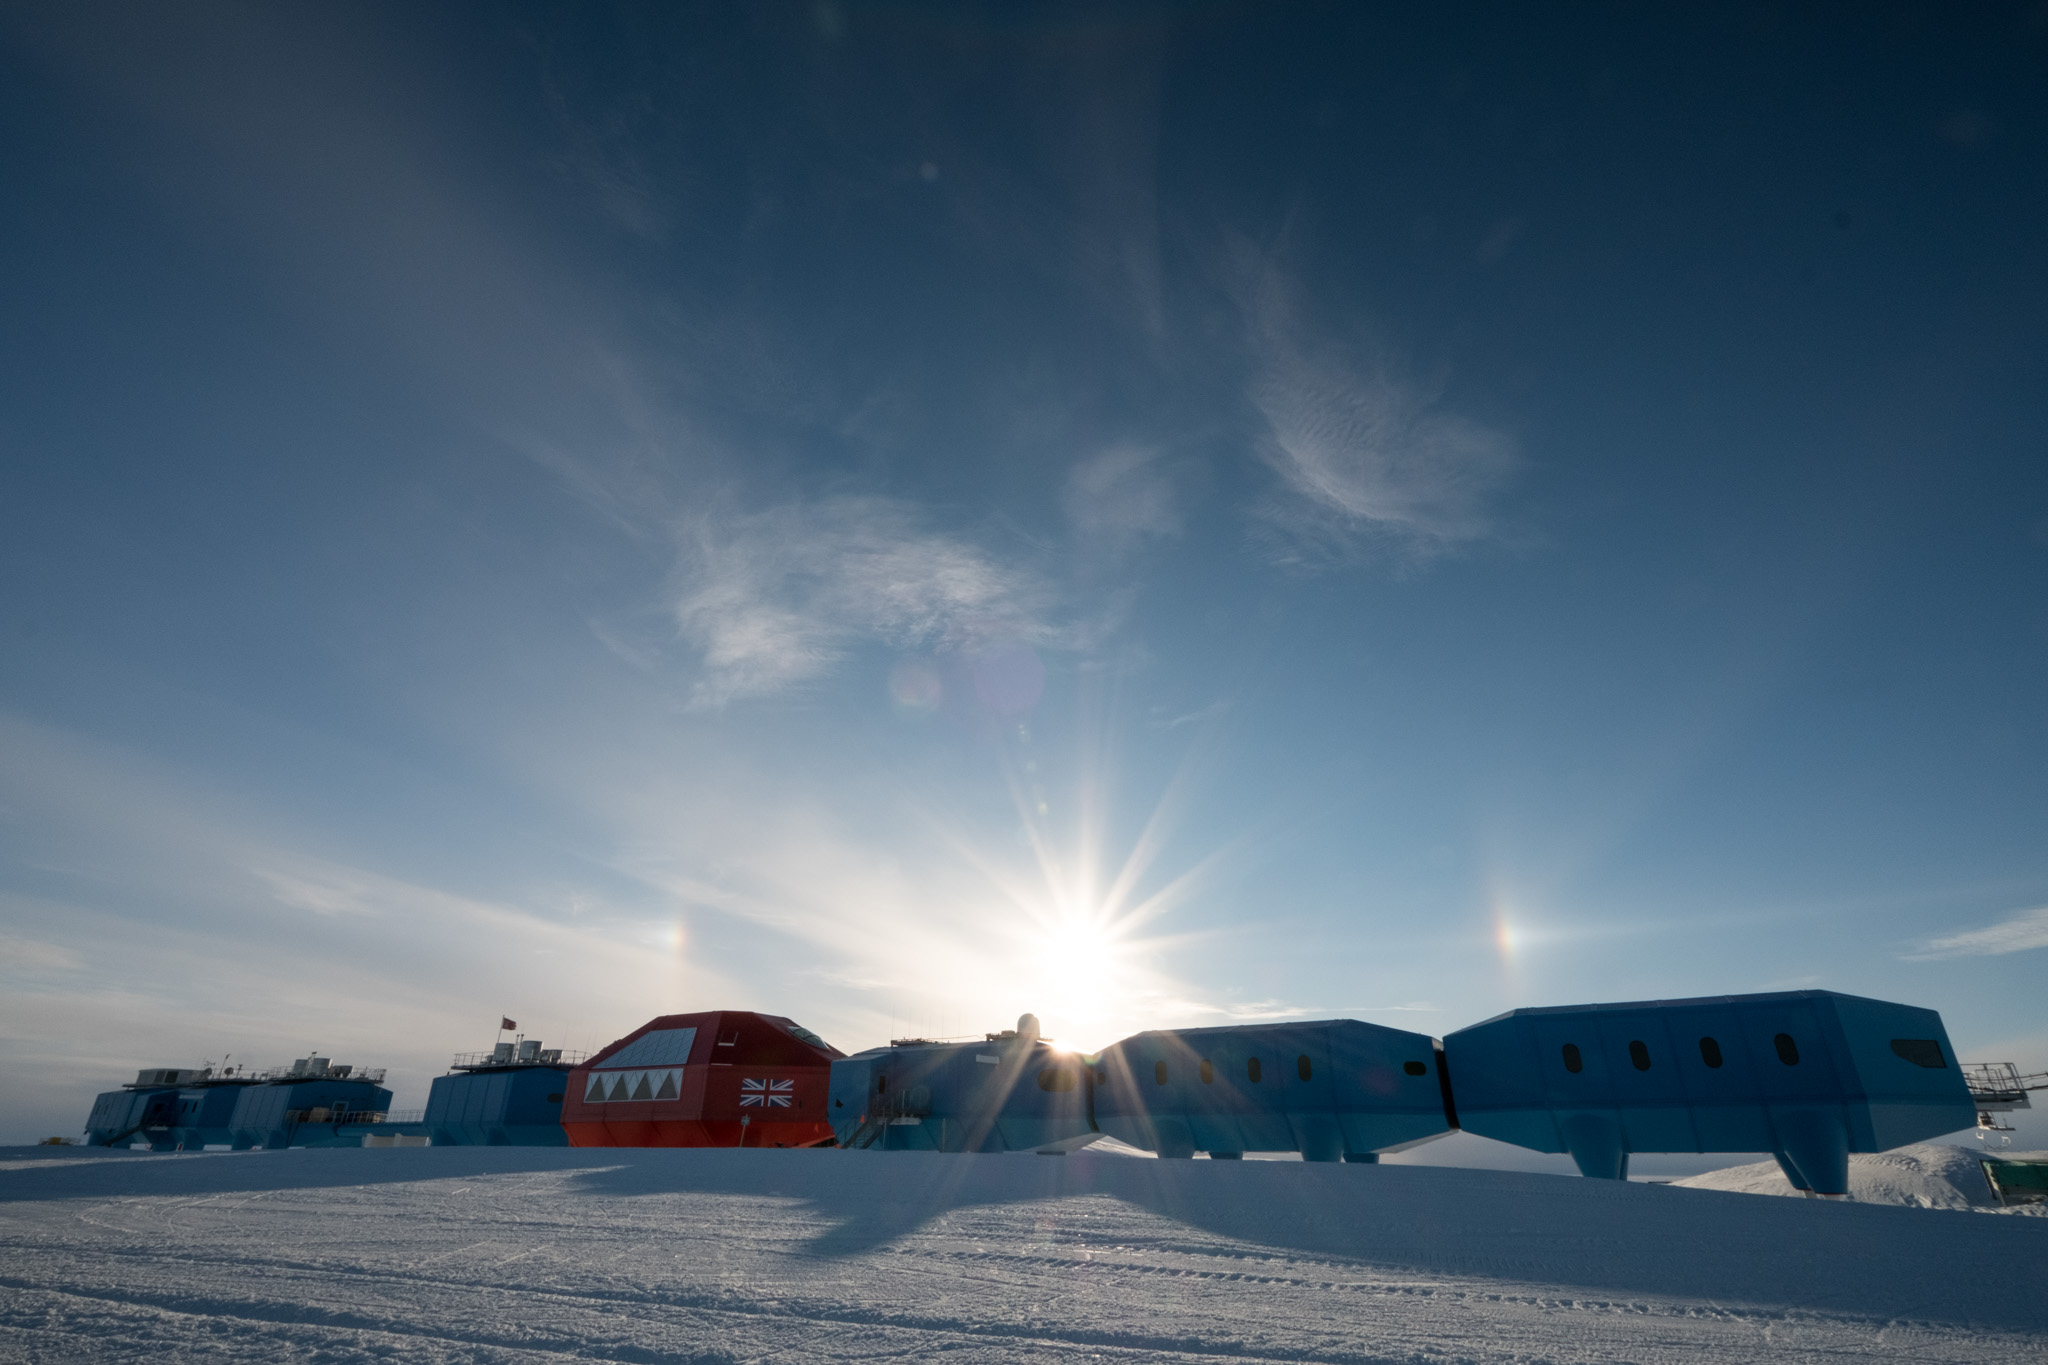 A beautiful shot of the Halley VI Research Station from Mike on a clear evening